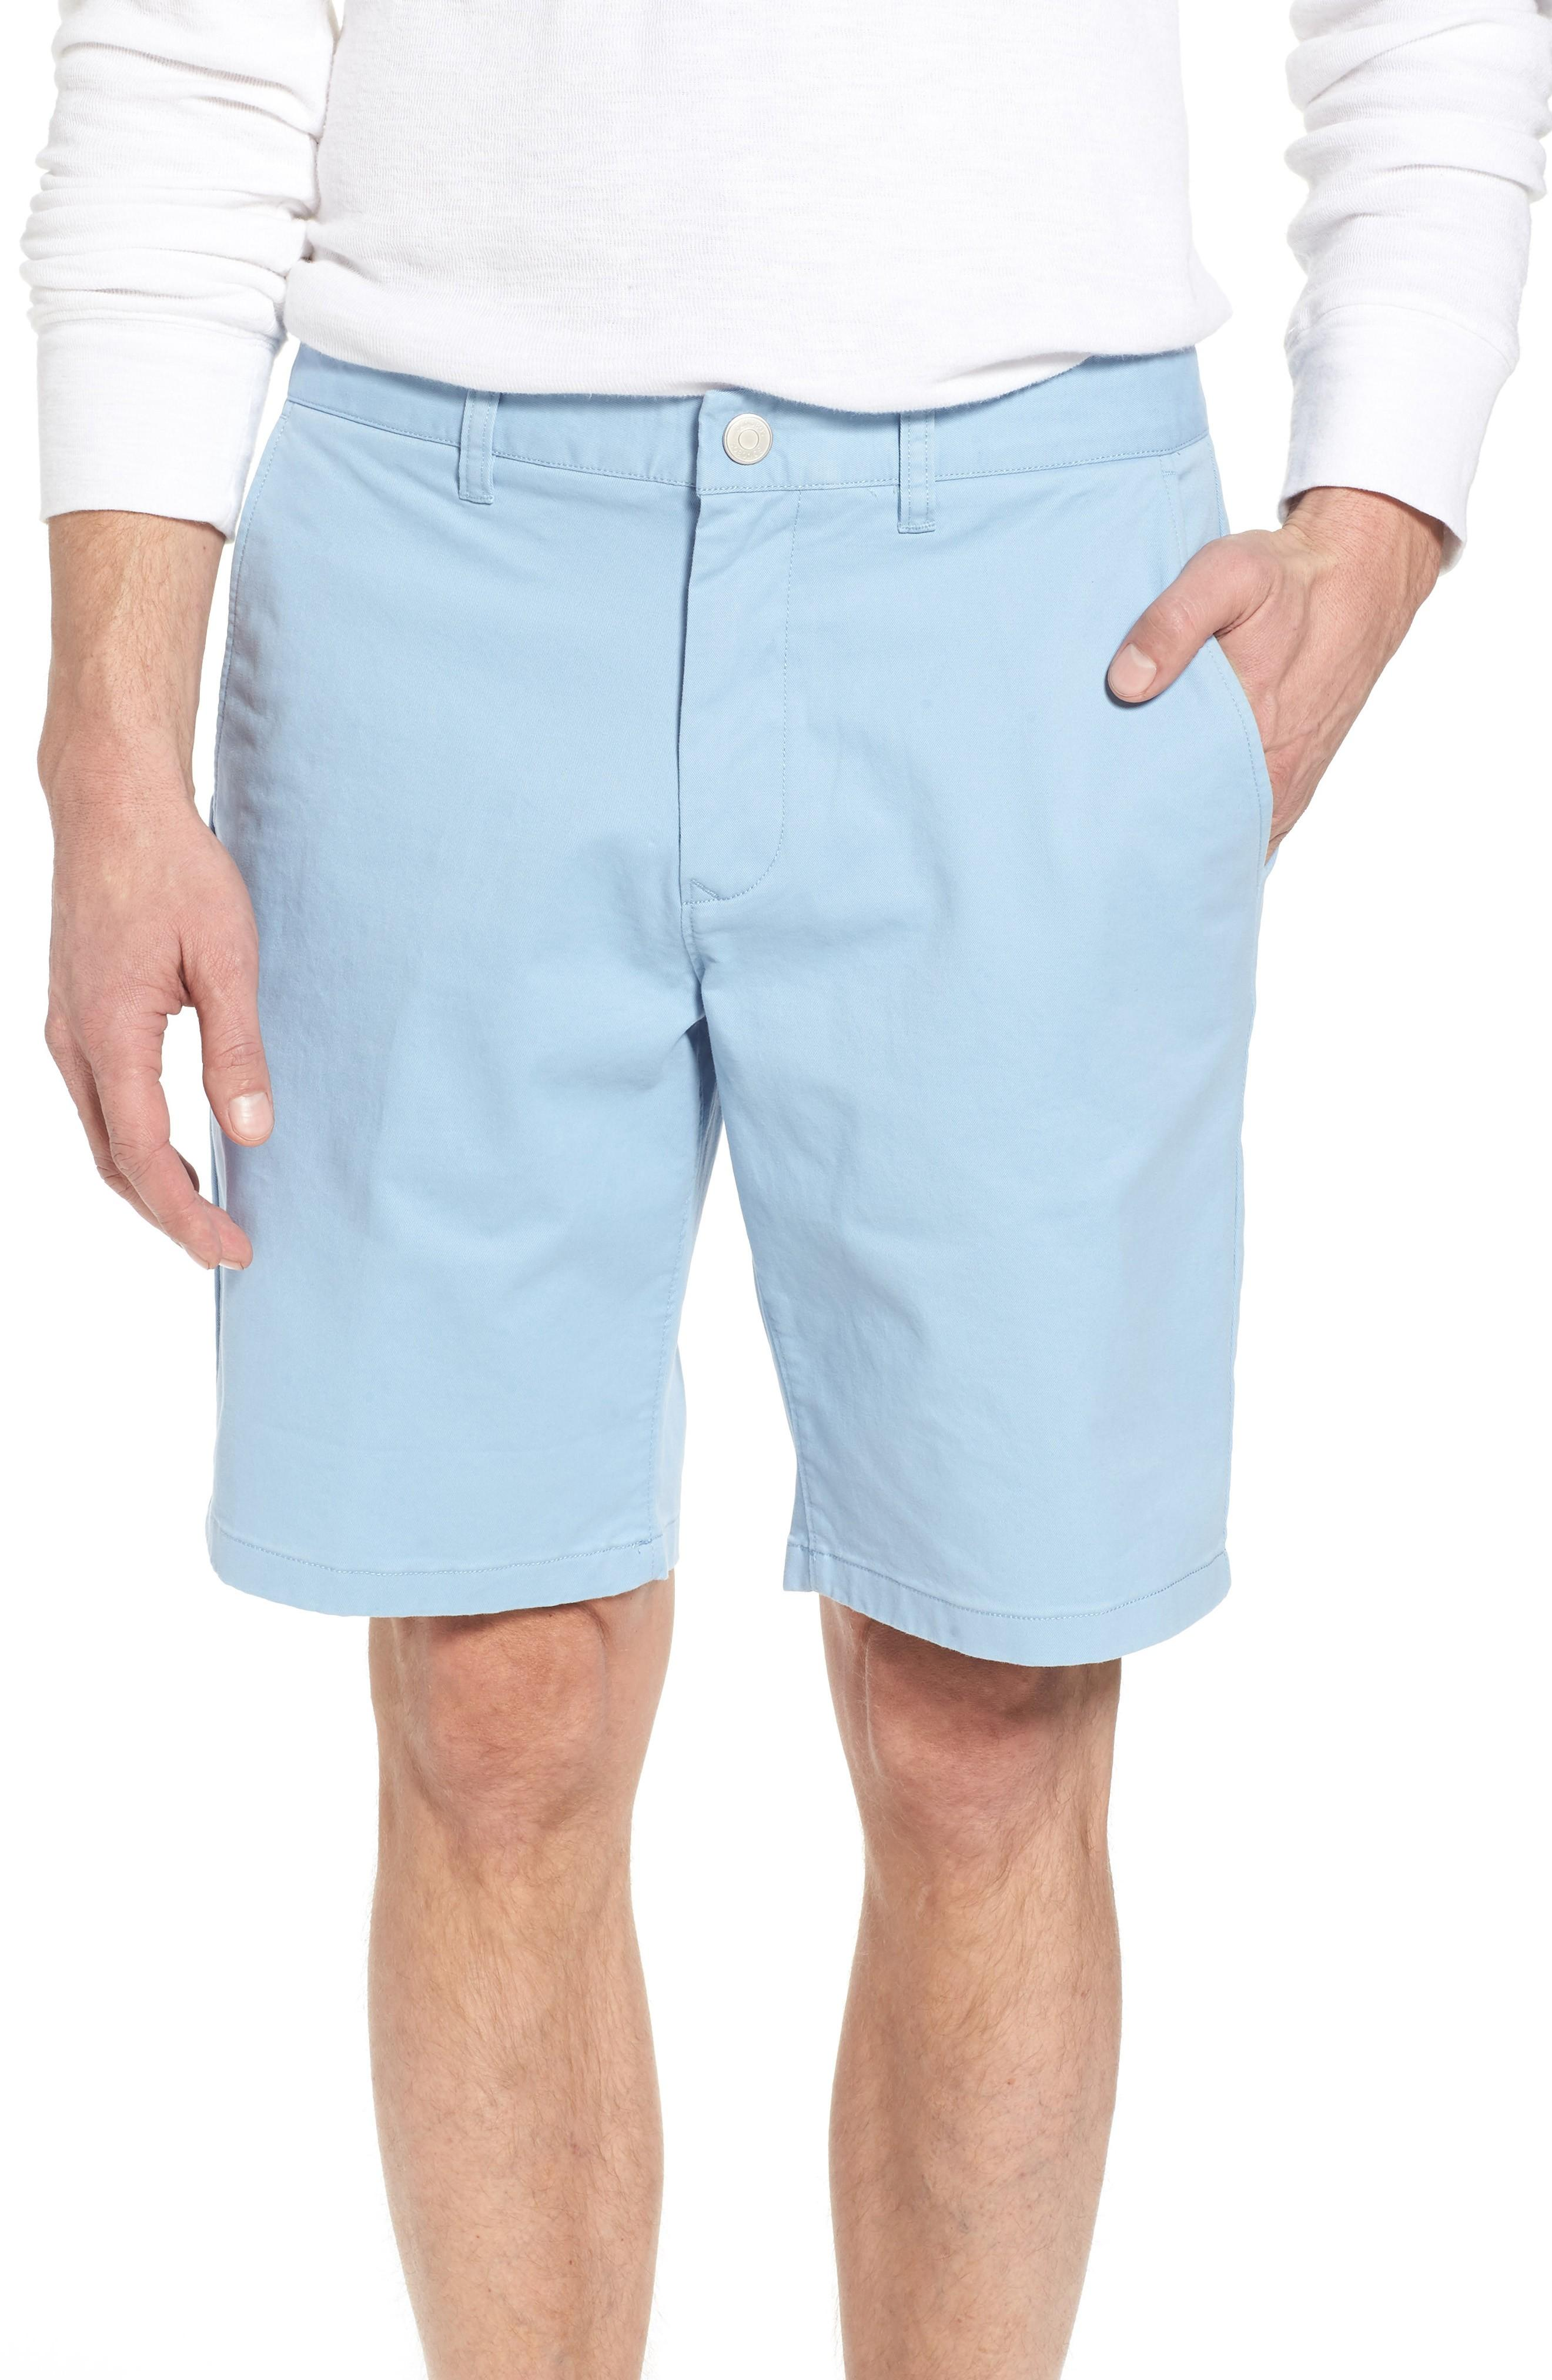 Bonobos Stretch Washed Chino 9-inch Shorts In Bywater